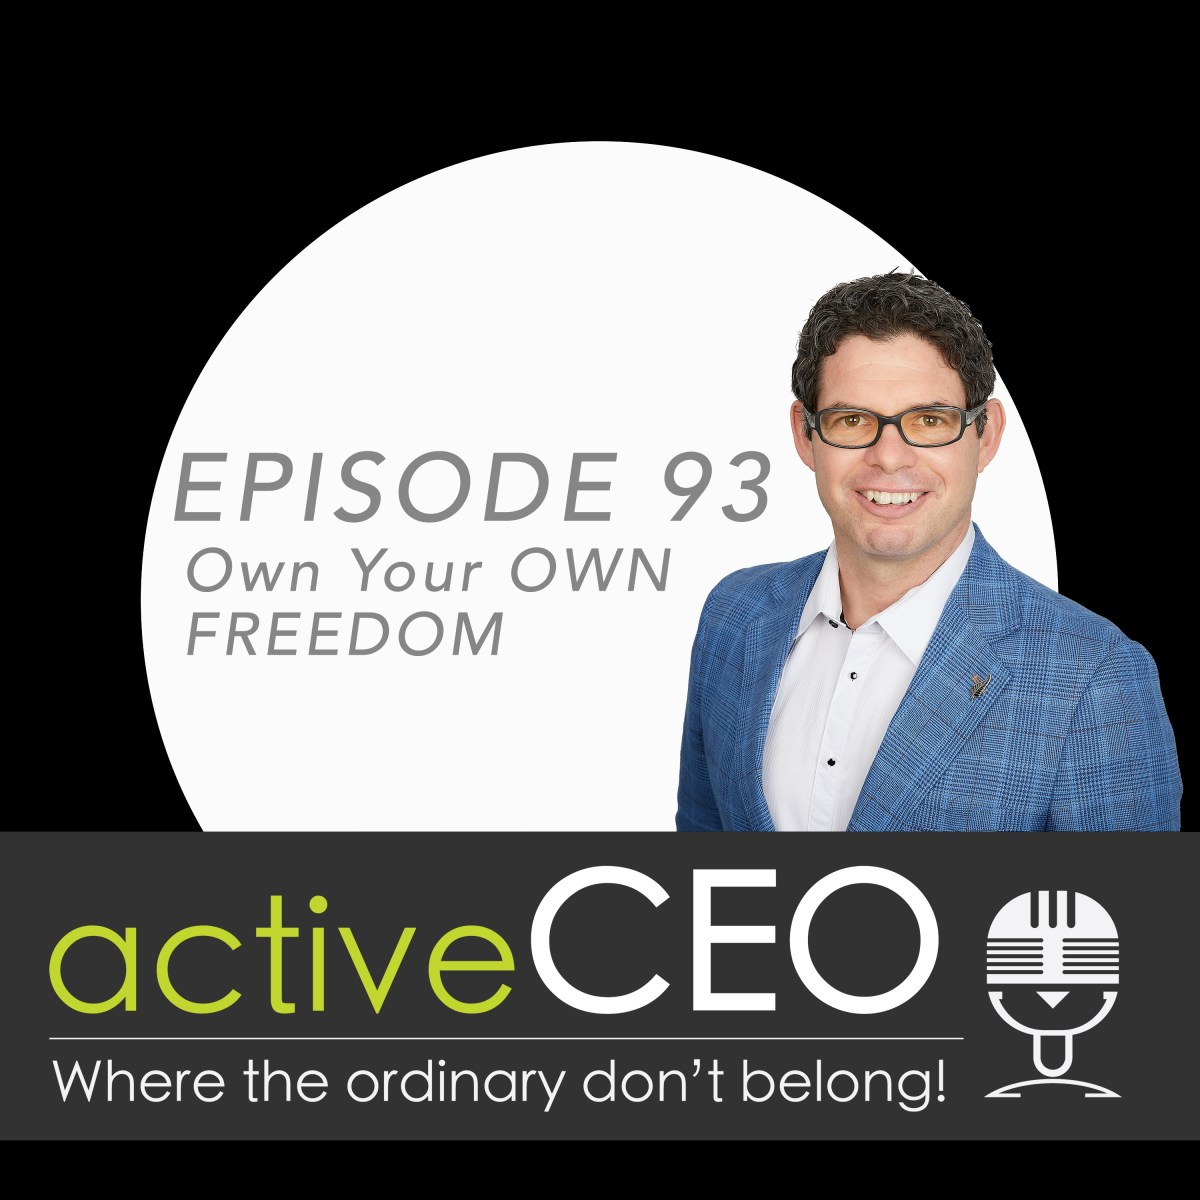 OWN Your OWN Freedom Craig Johns Breaking The CEO Code